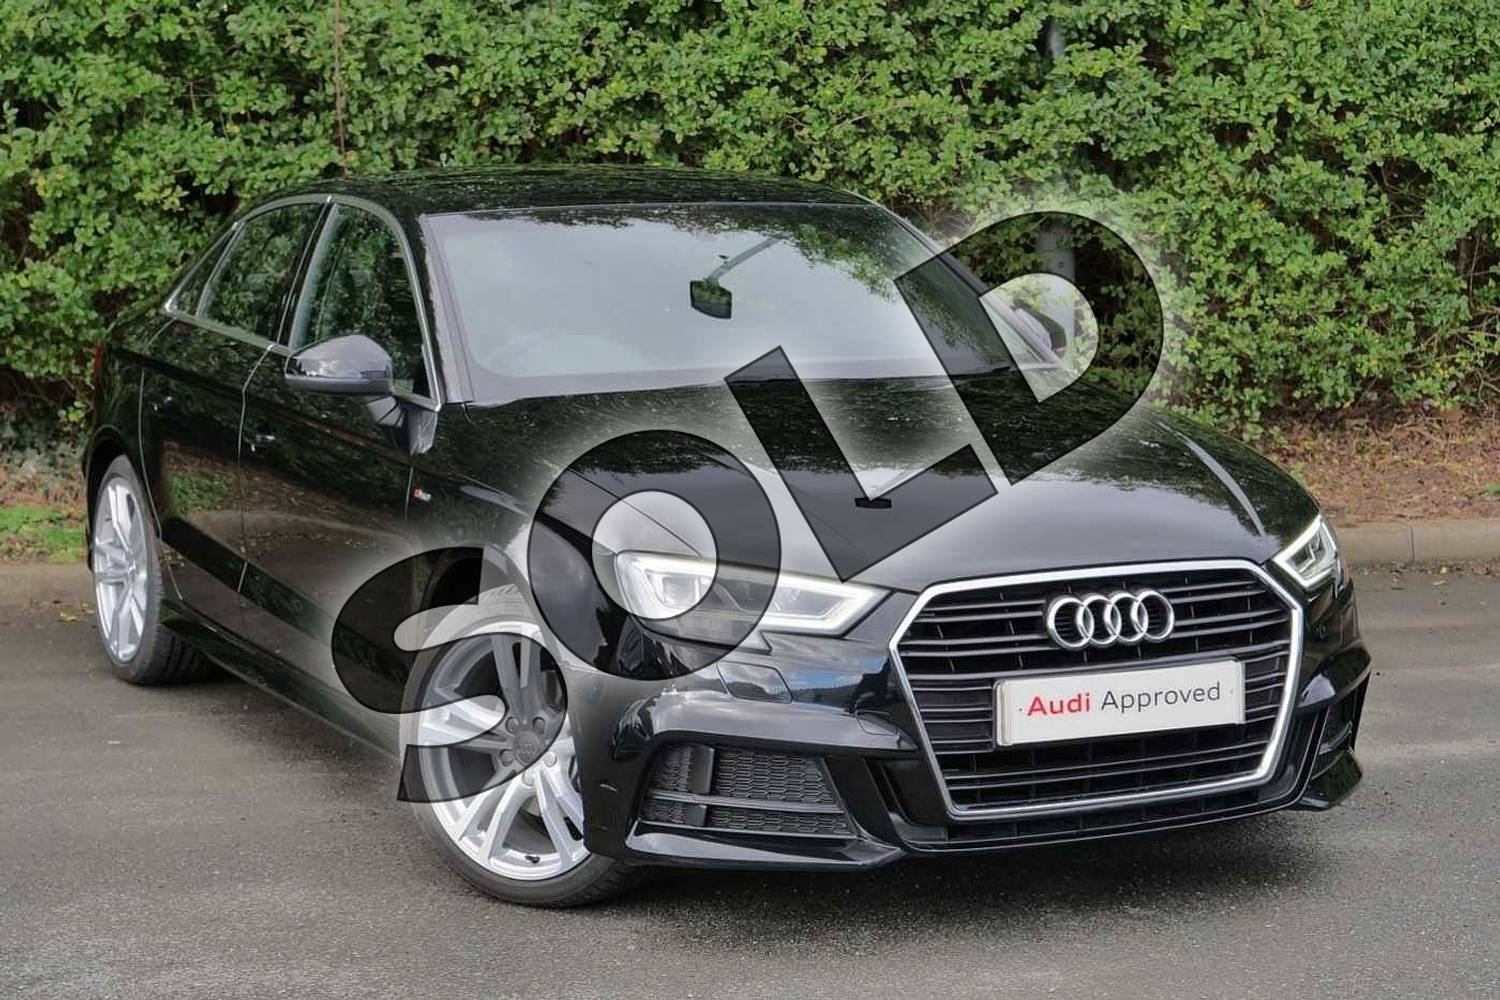 2020 Audi A3 Diesel Saloon 35 TDI S Line 4dr in Myth Black Metallic at Worcester Audi